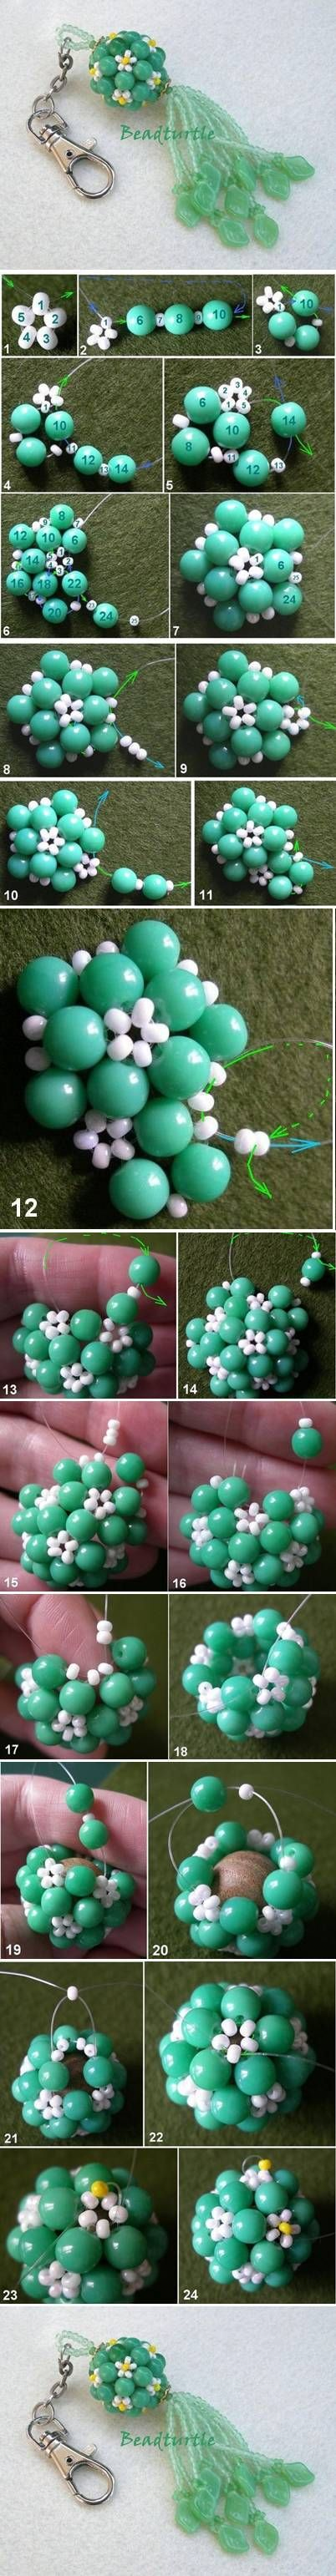 DIY Key Chain Beads Charm DIY Projects